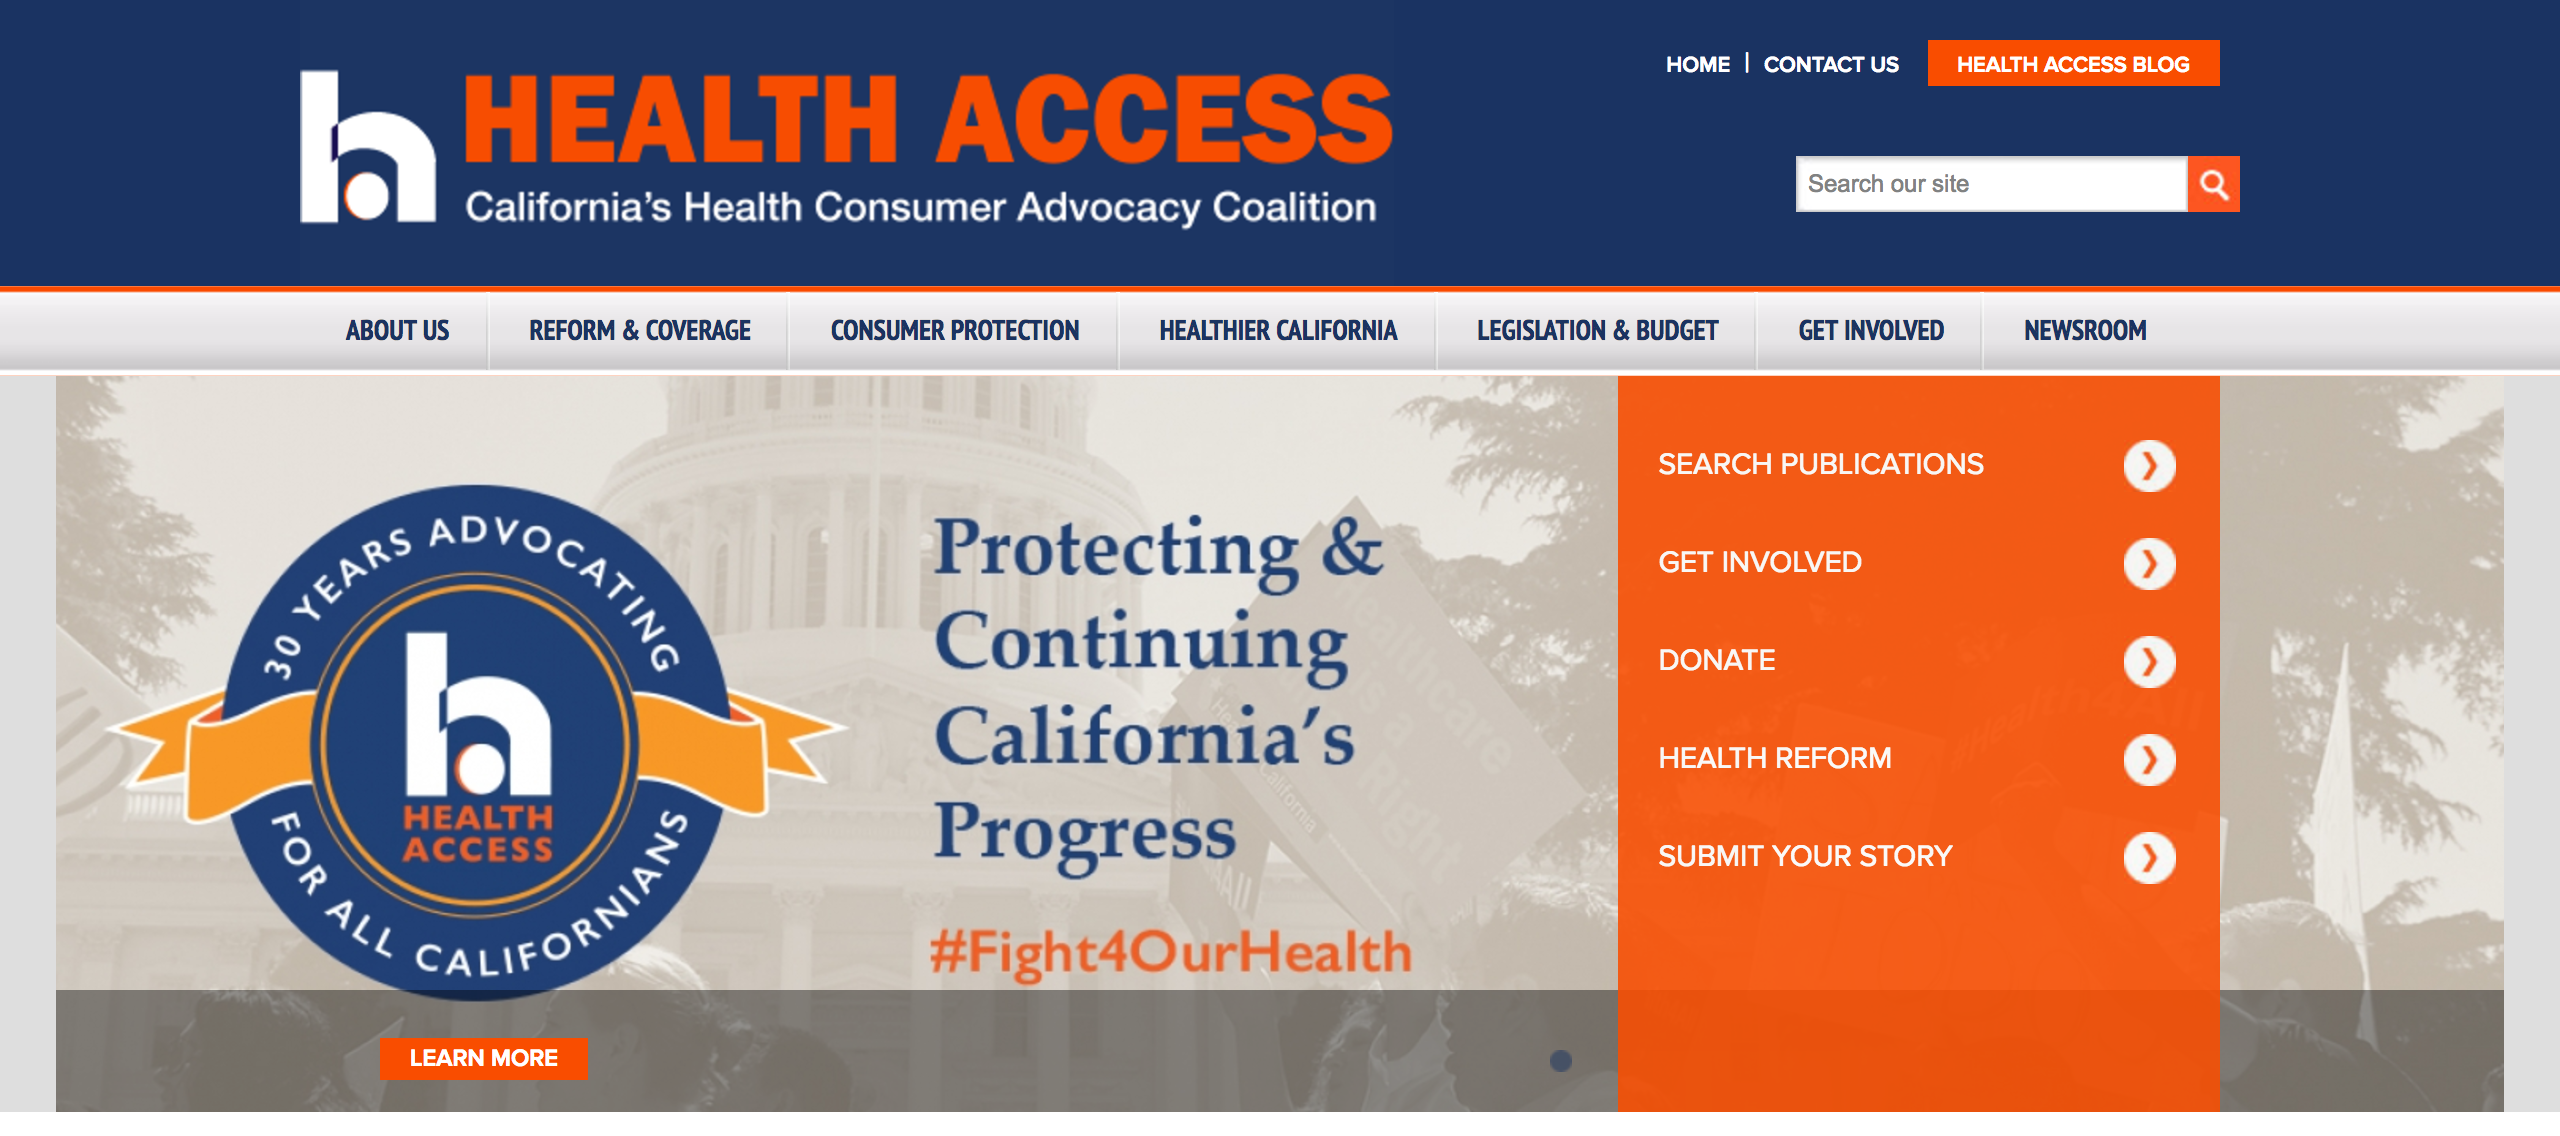 healthaccess-home